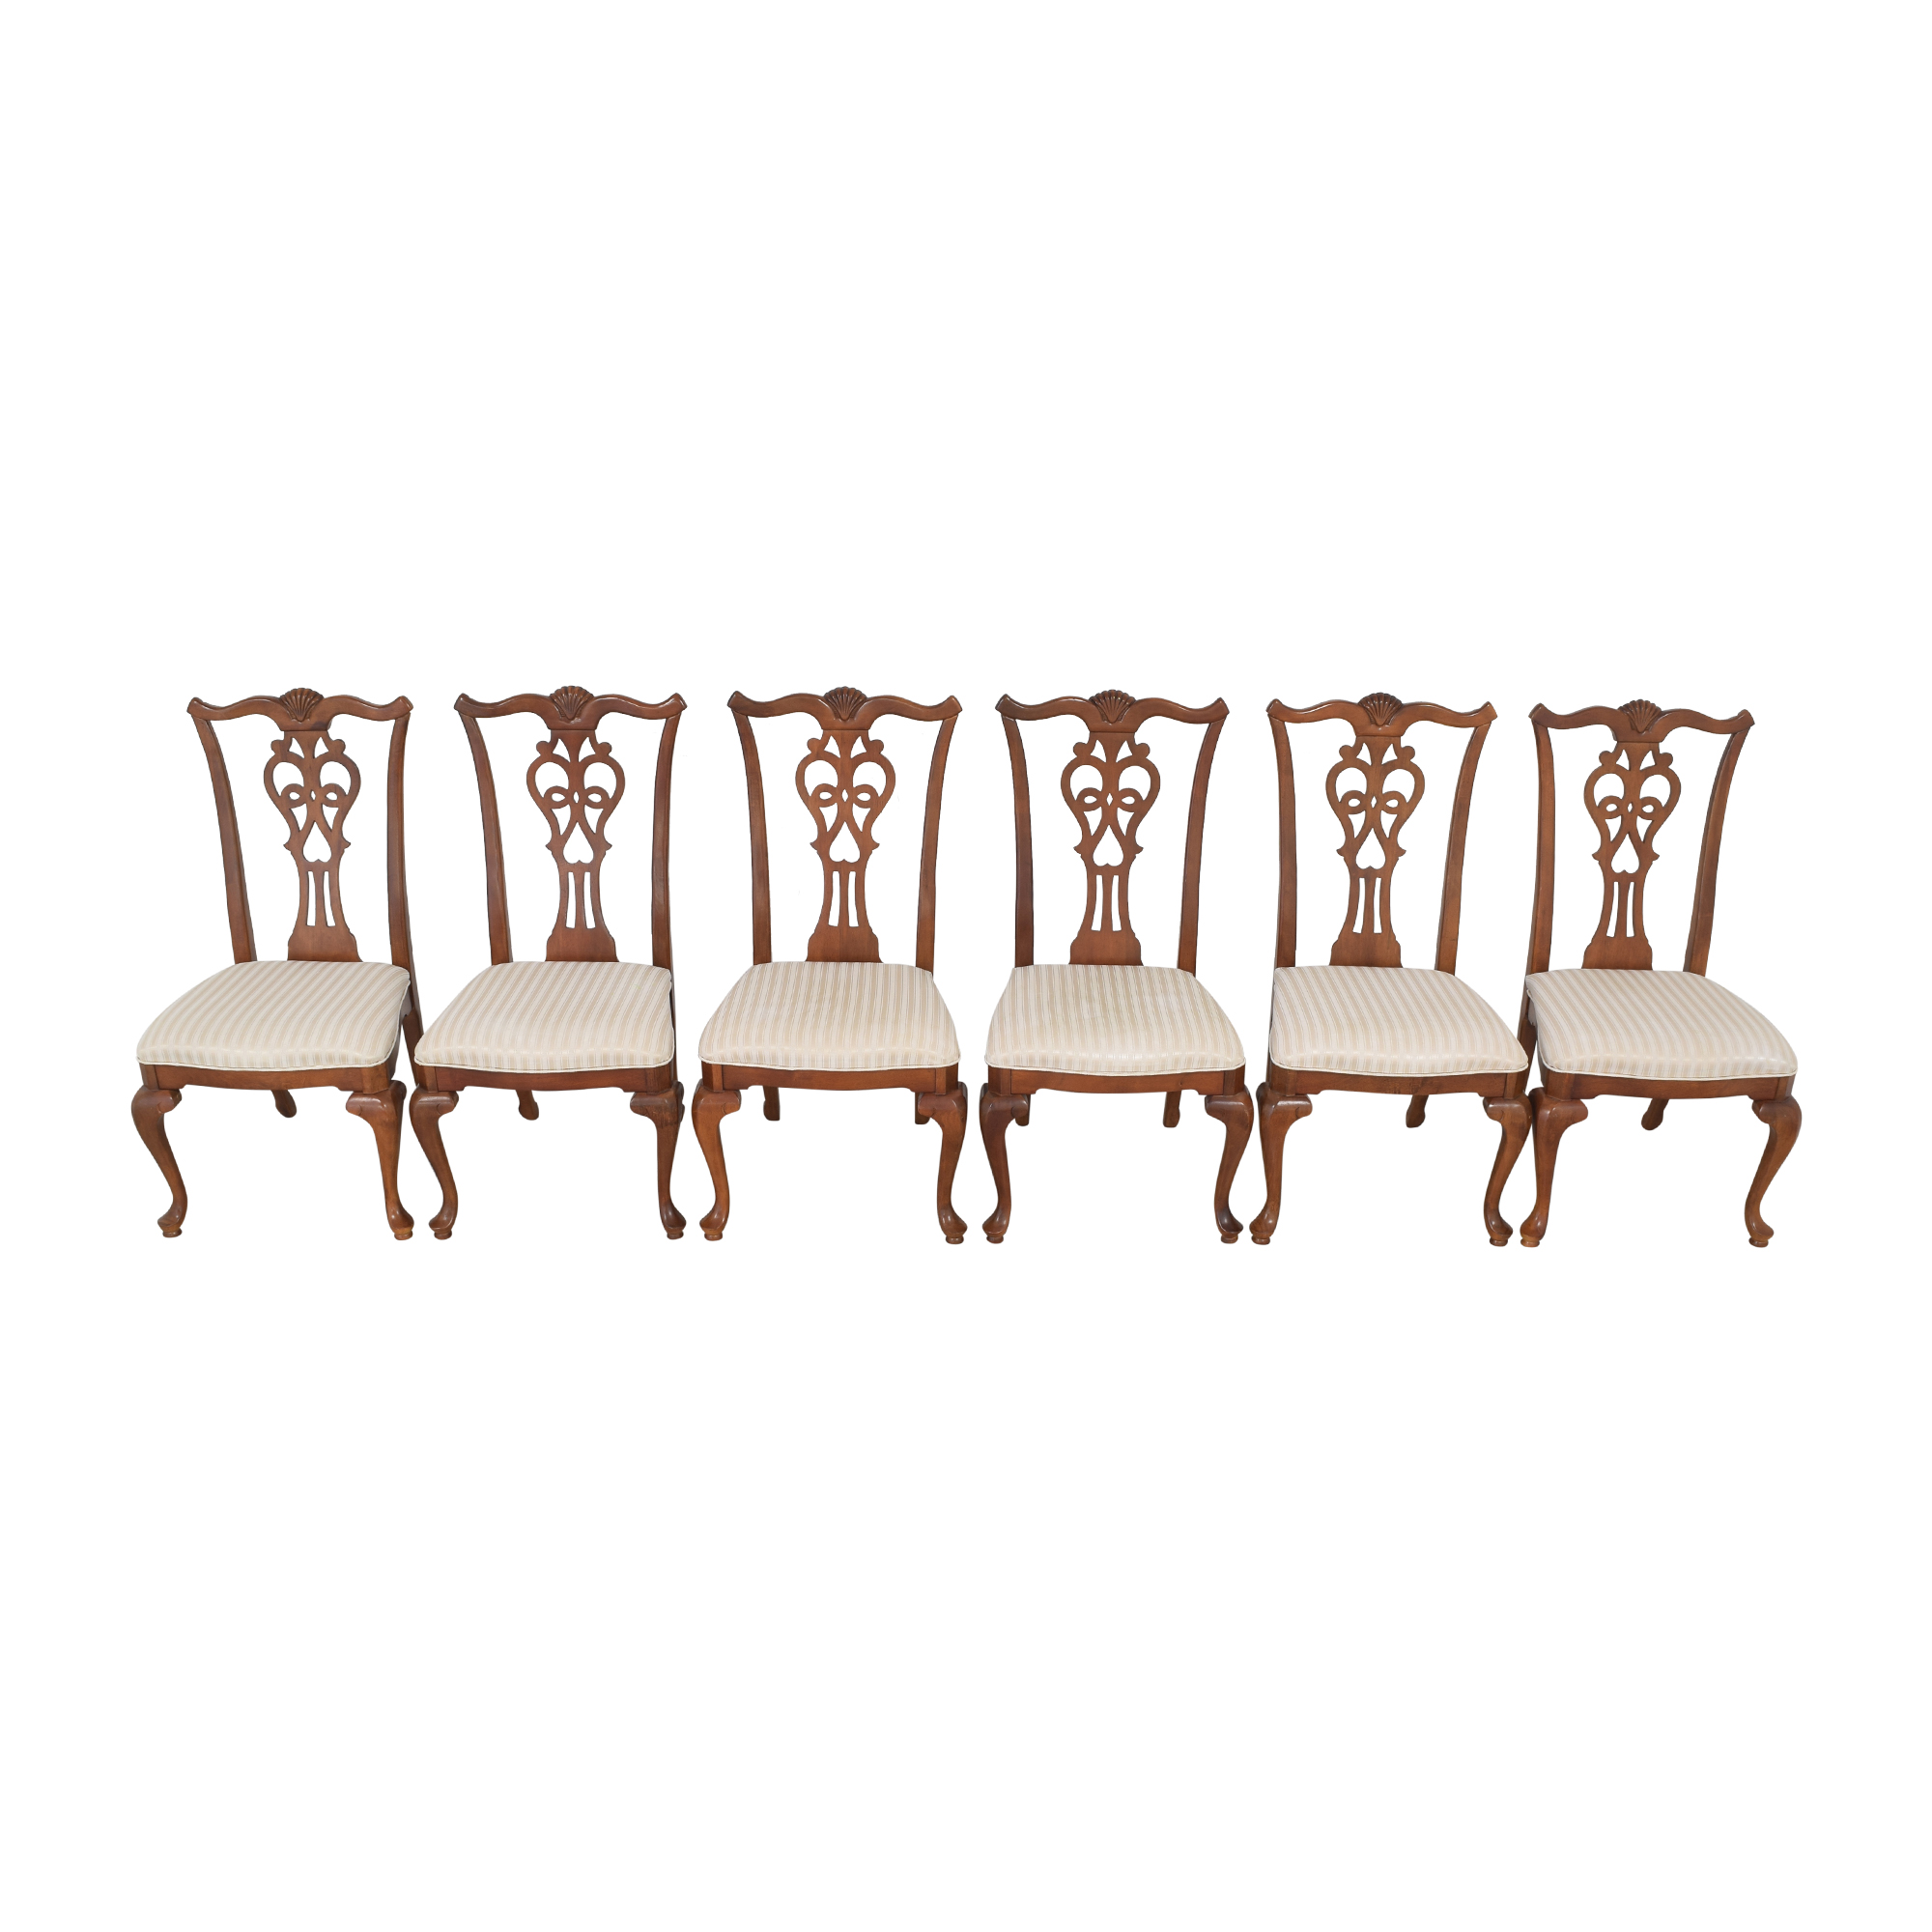 Universal Furniture Universal Furniture Upholstered Dining Chairs pa